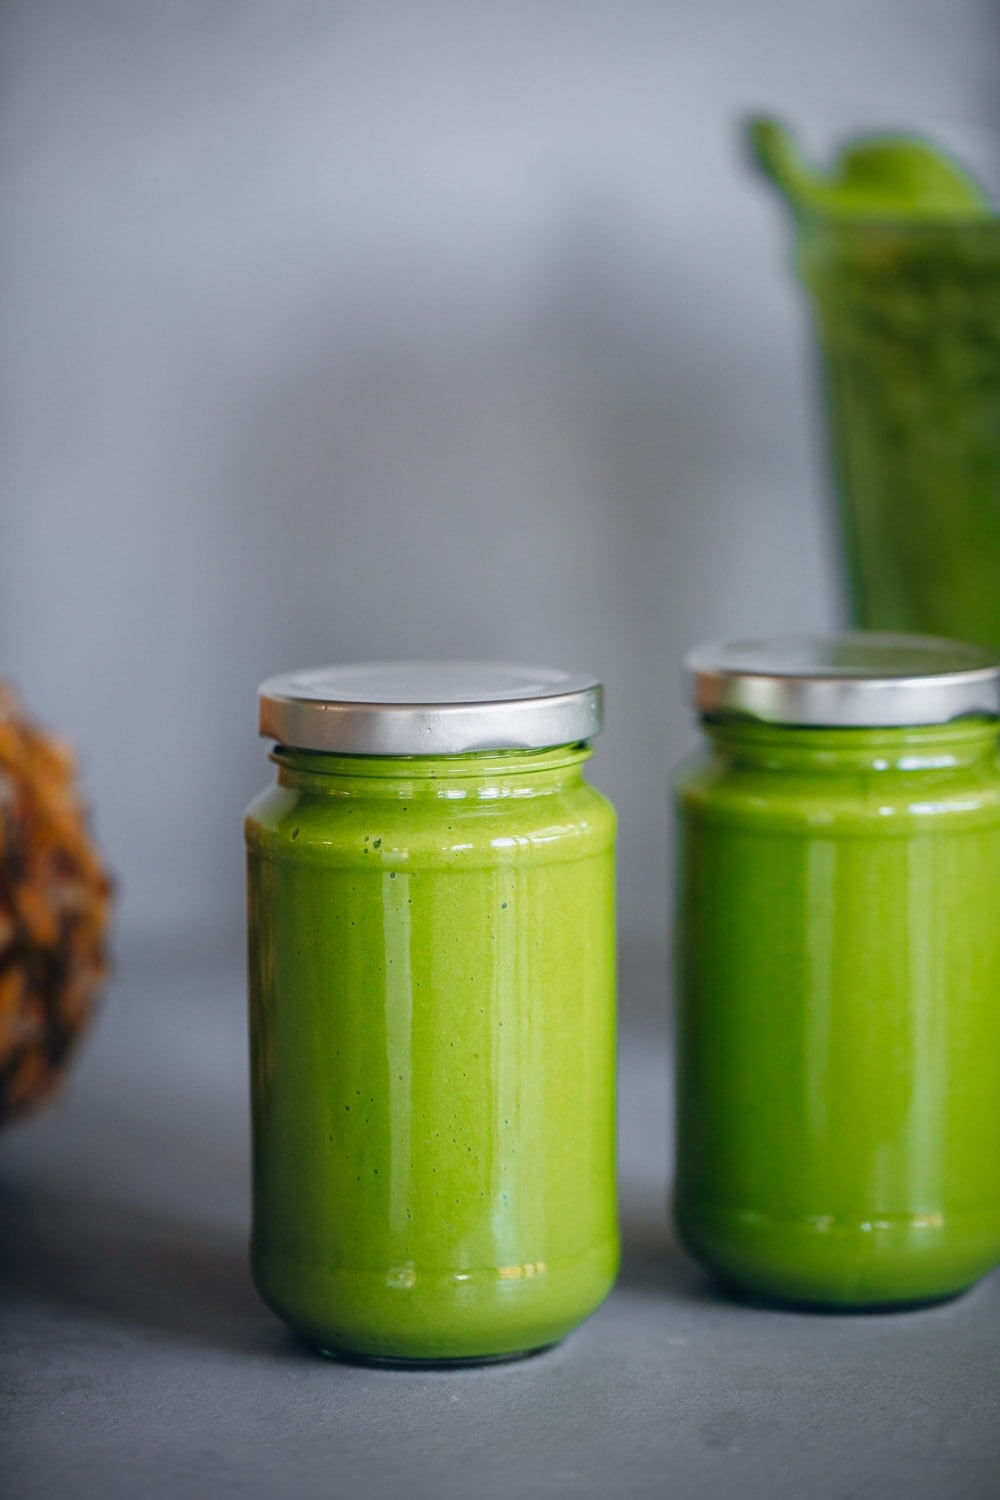 Green Pineapple Smoothie - Cook Republic